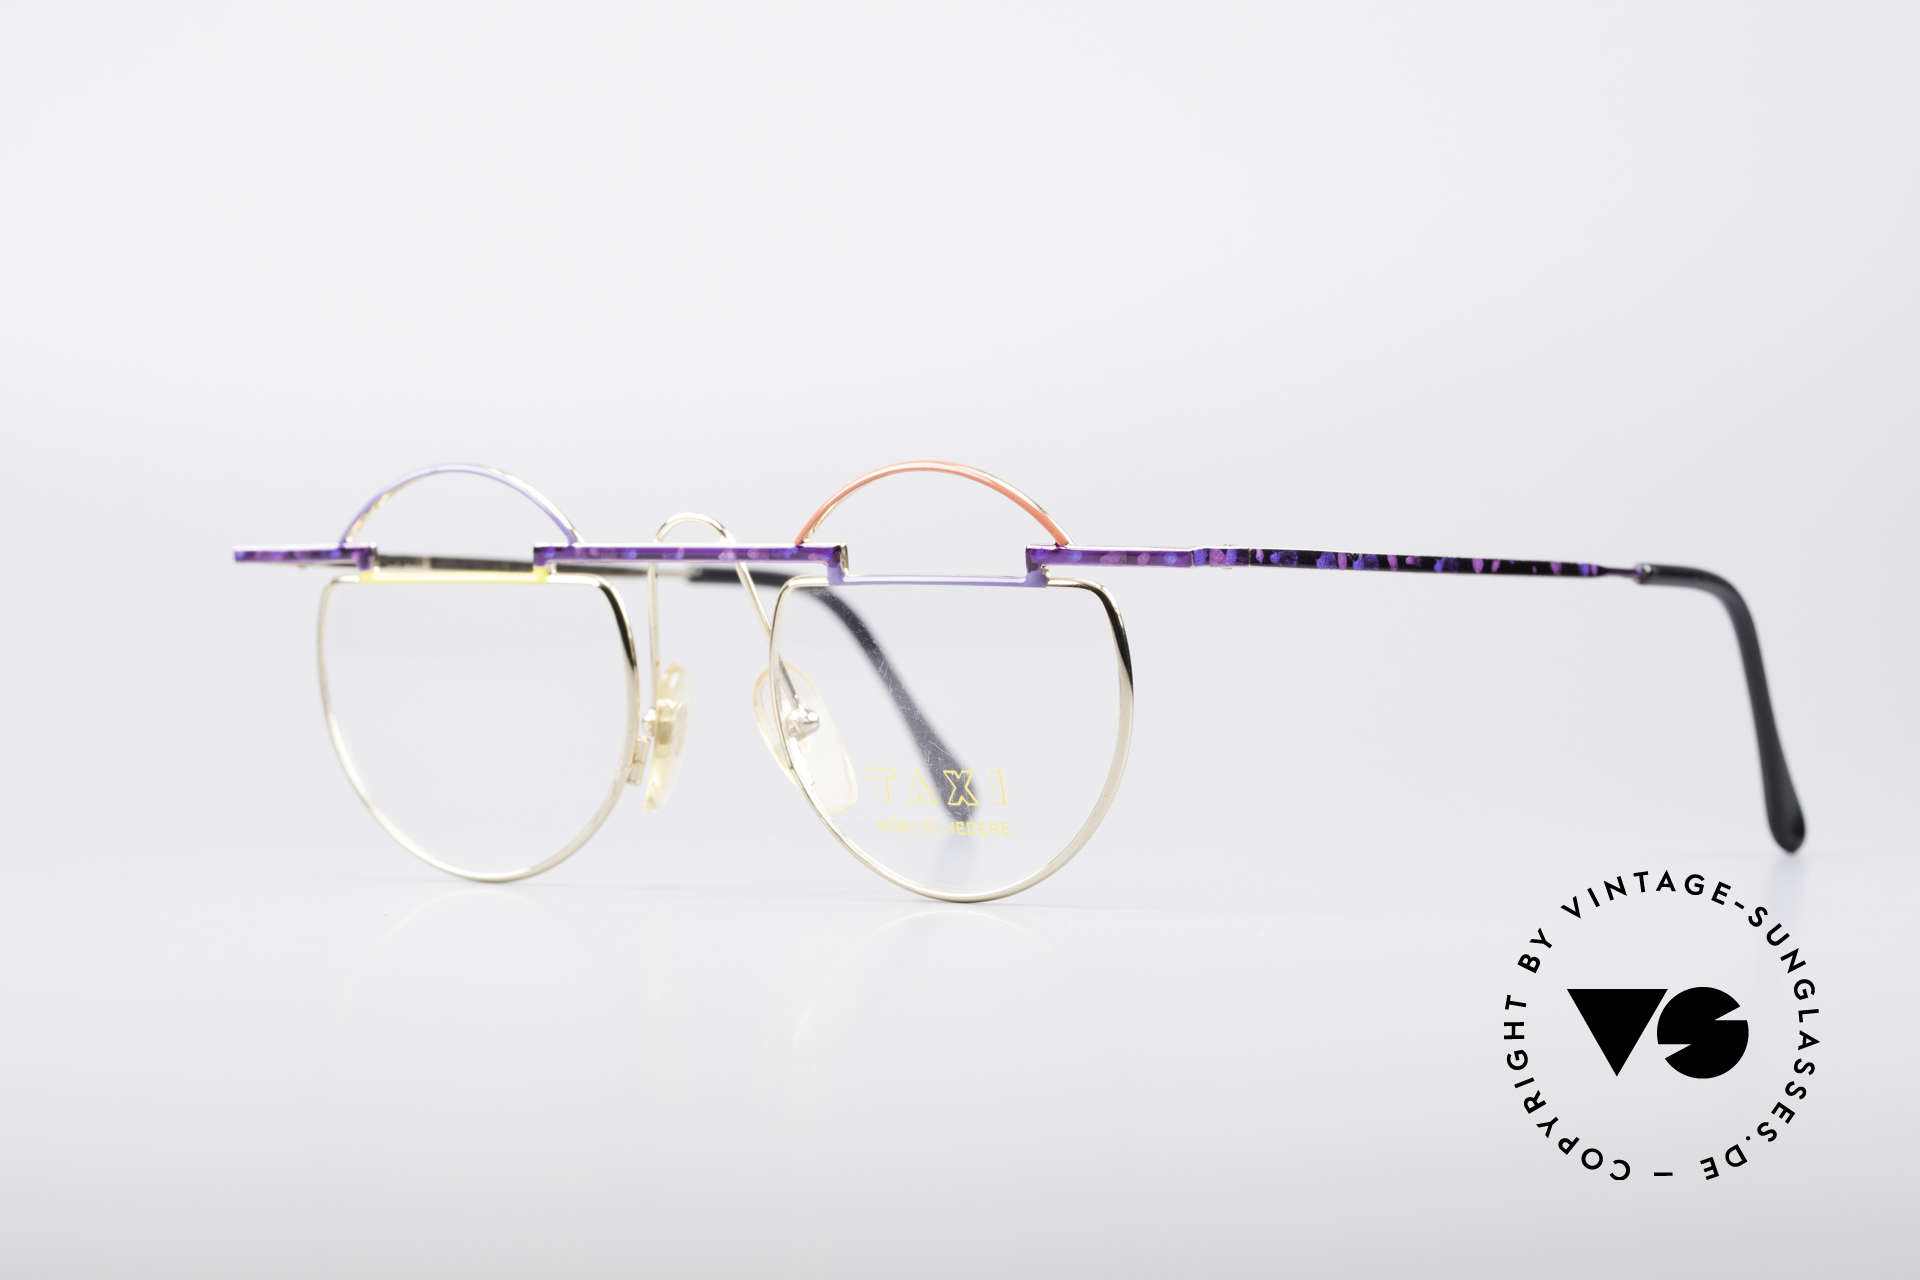 Taxi 221 by Casanova Vintage Art Frame, represents the exuberance of the Venetian carnival, Made for Women